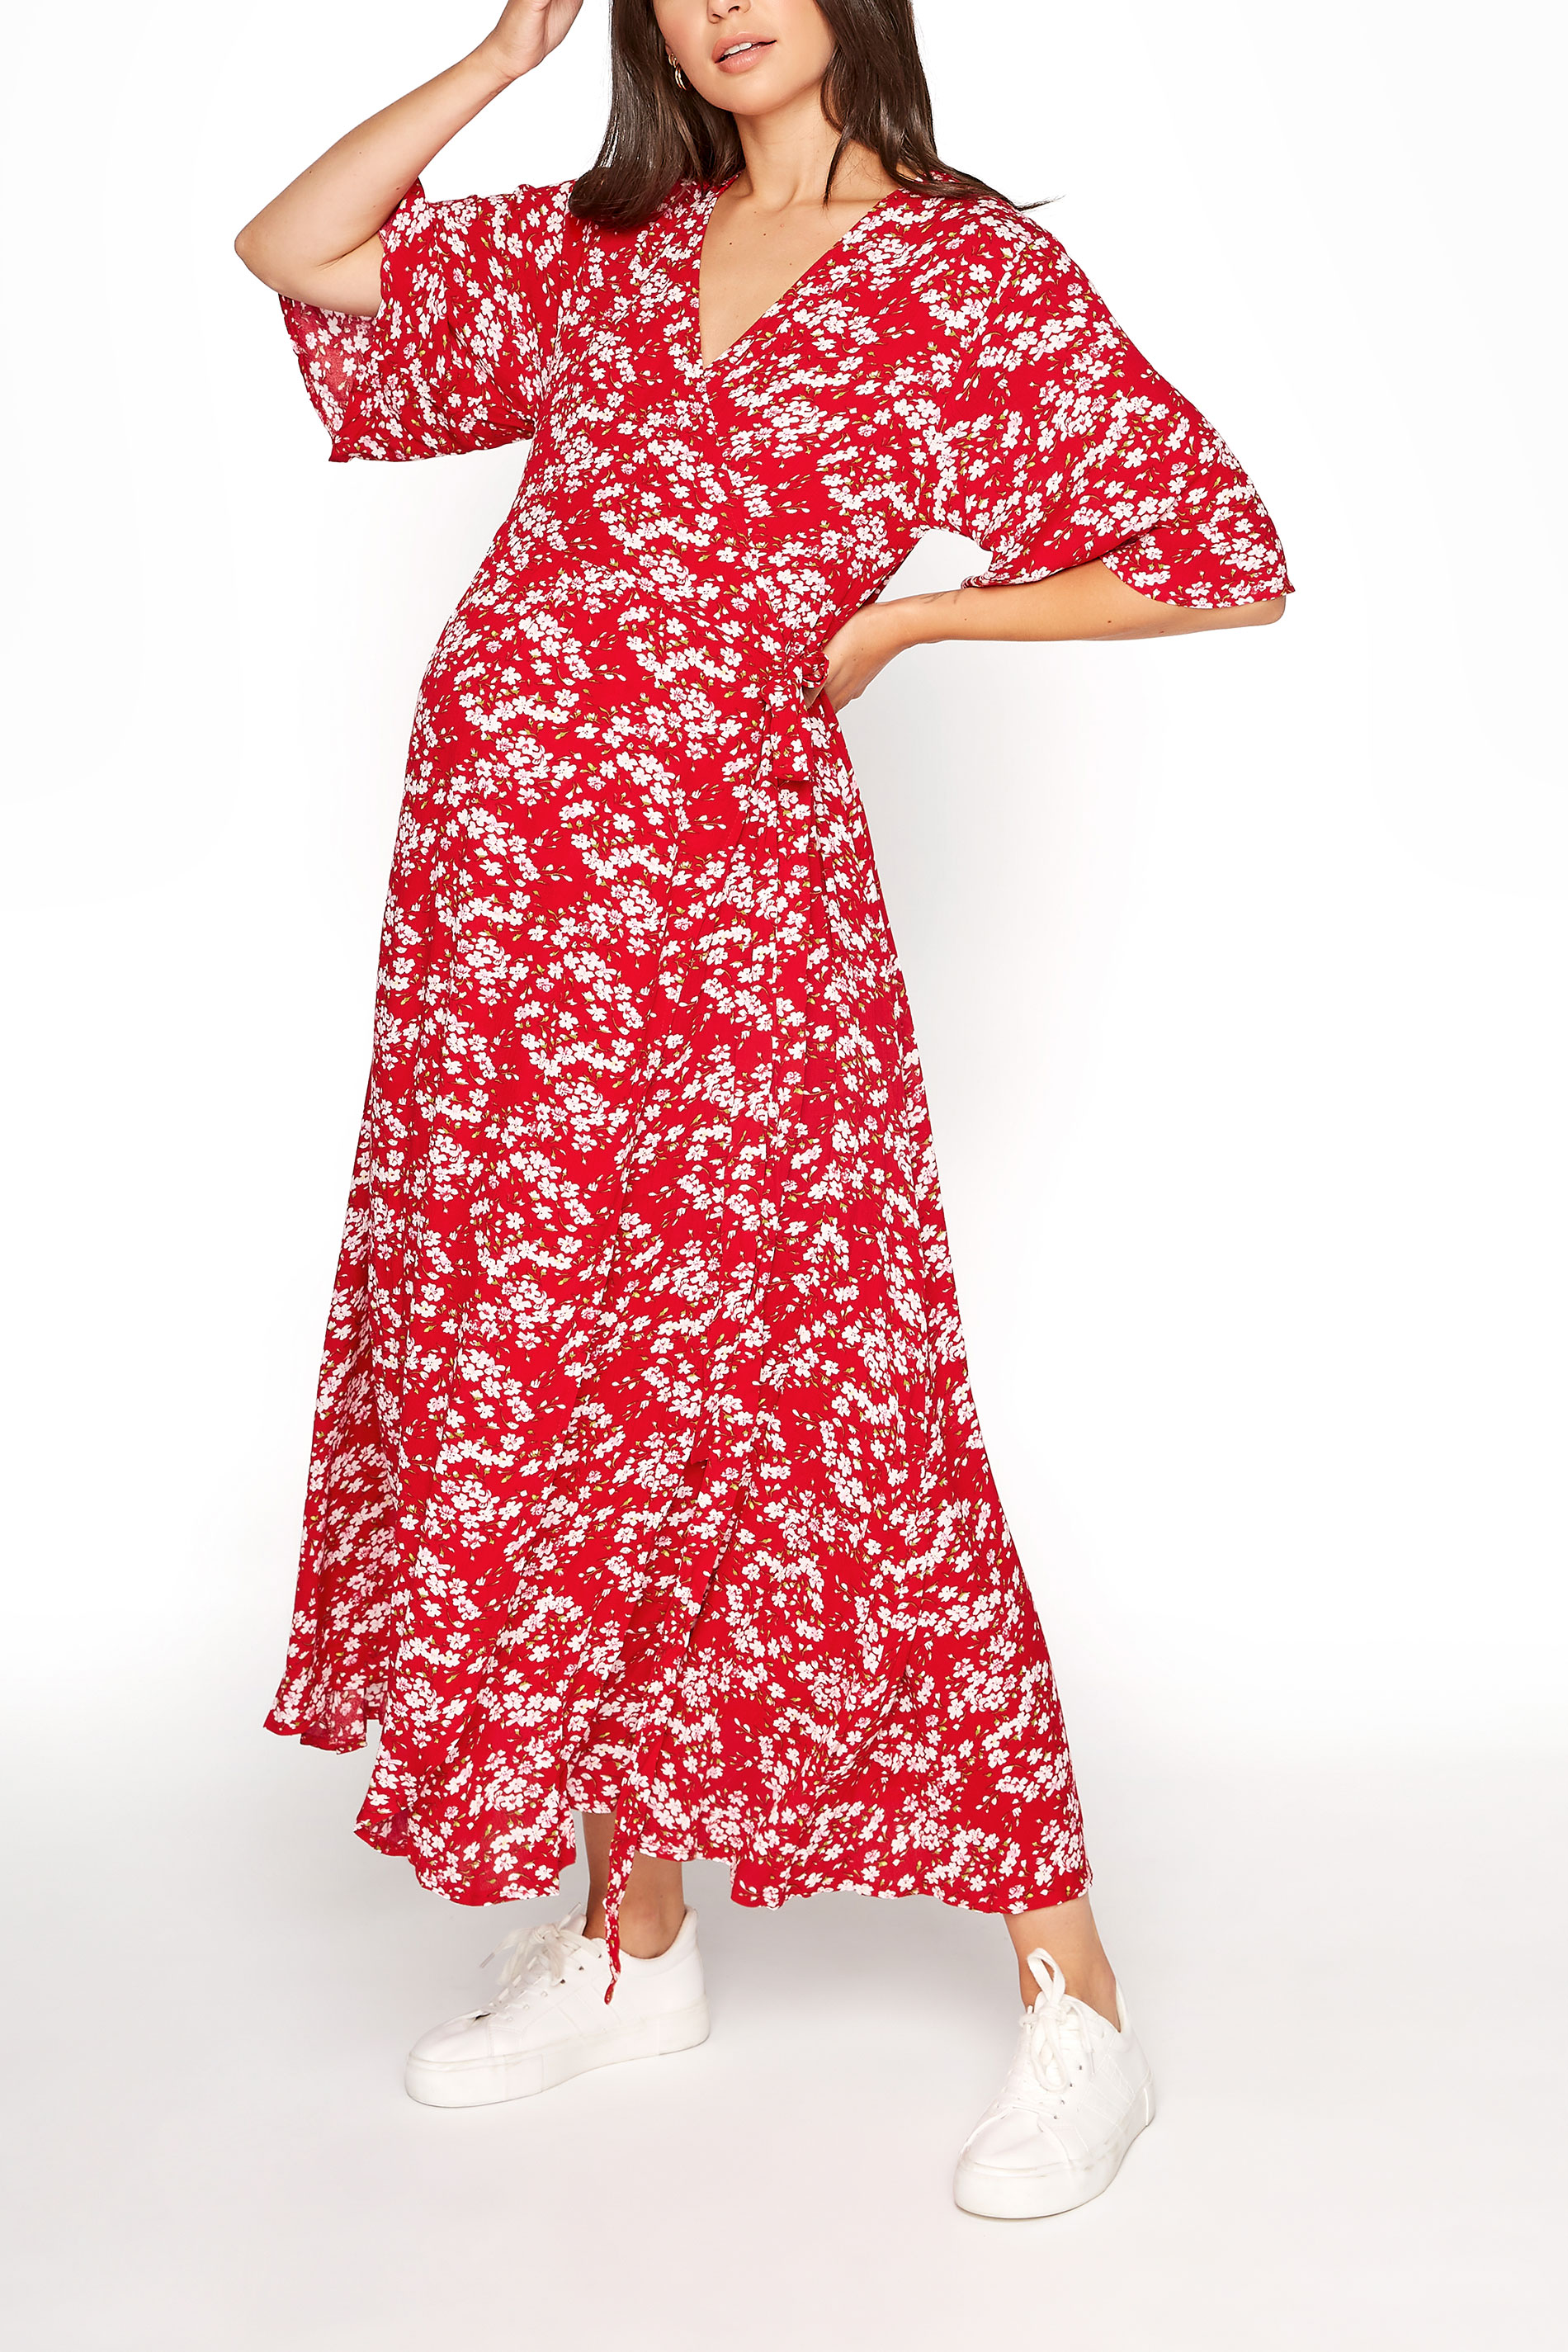 LTS Maternity Red & Pink Floral Wrap Dress_A.jpg